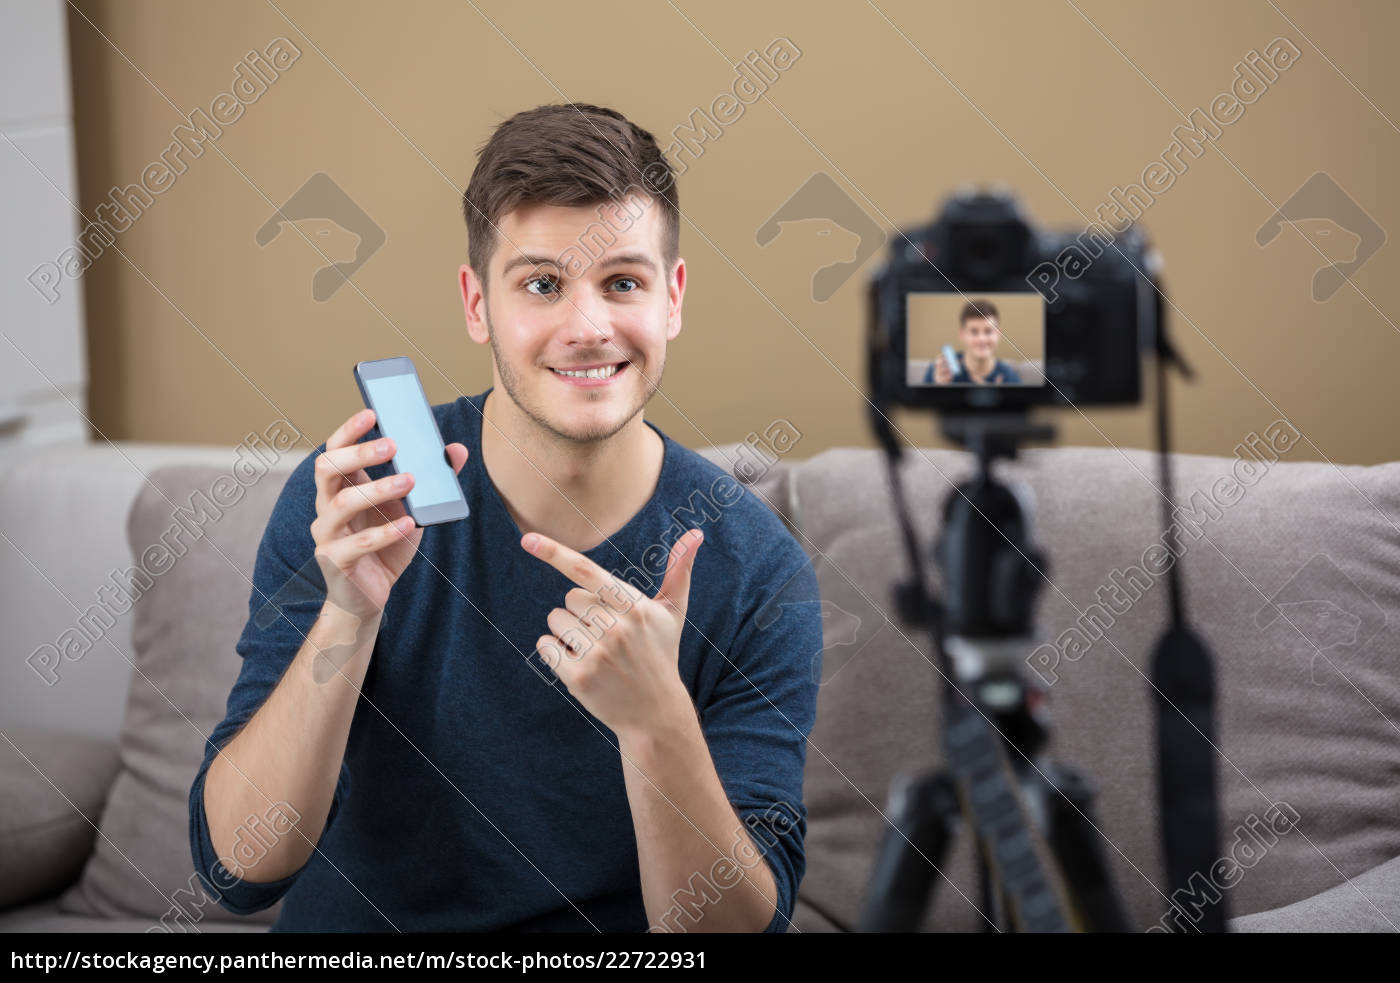 blogger, holding, mobile, phone, recording, video - 22722931